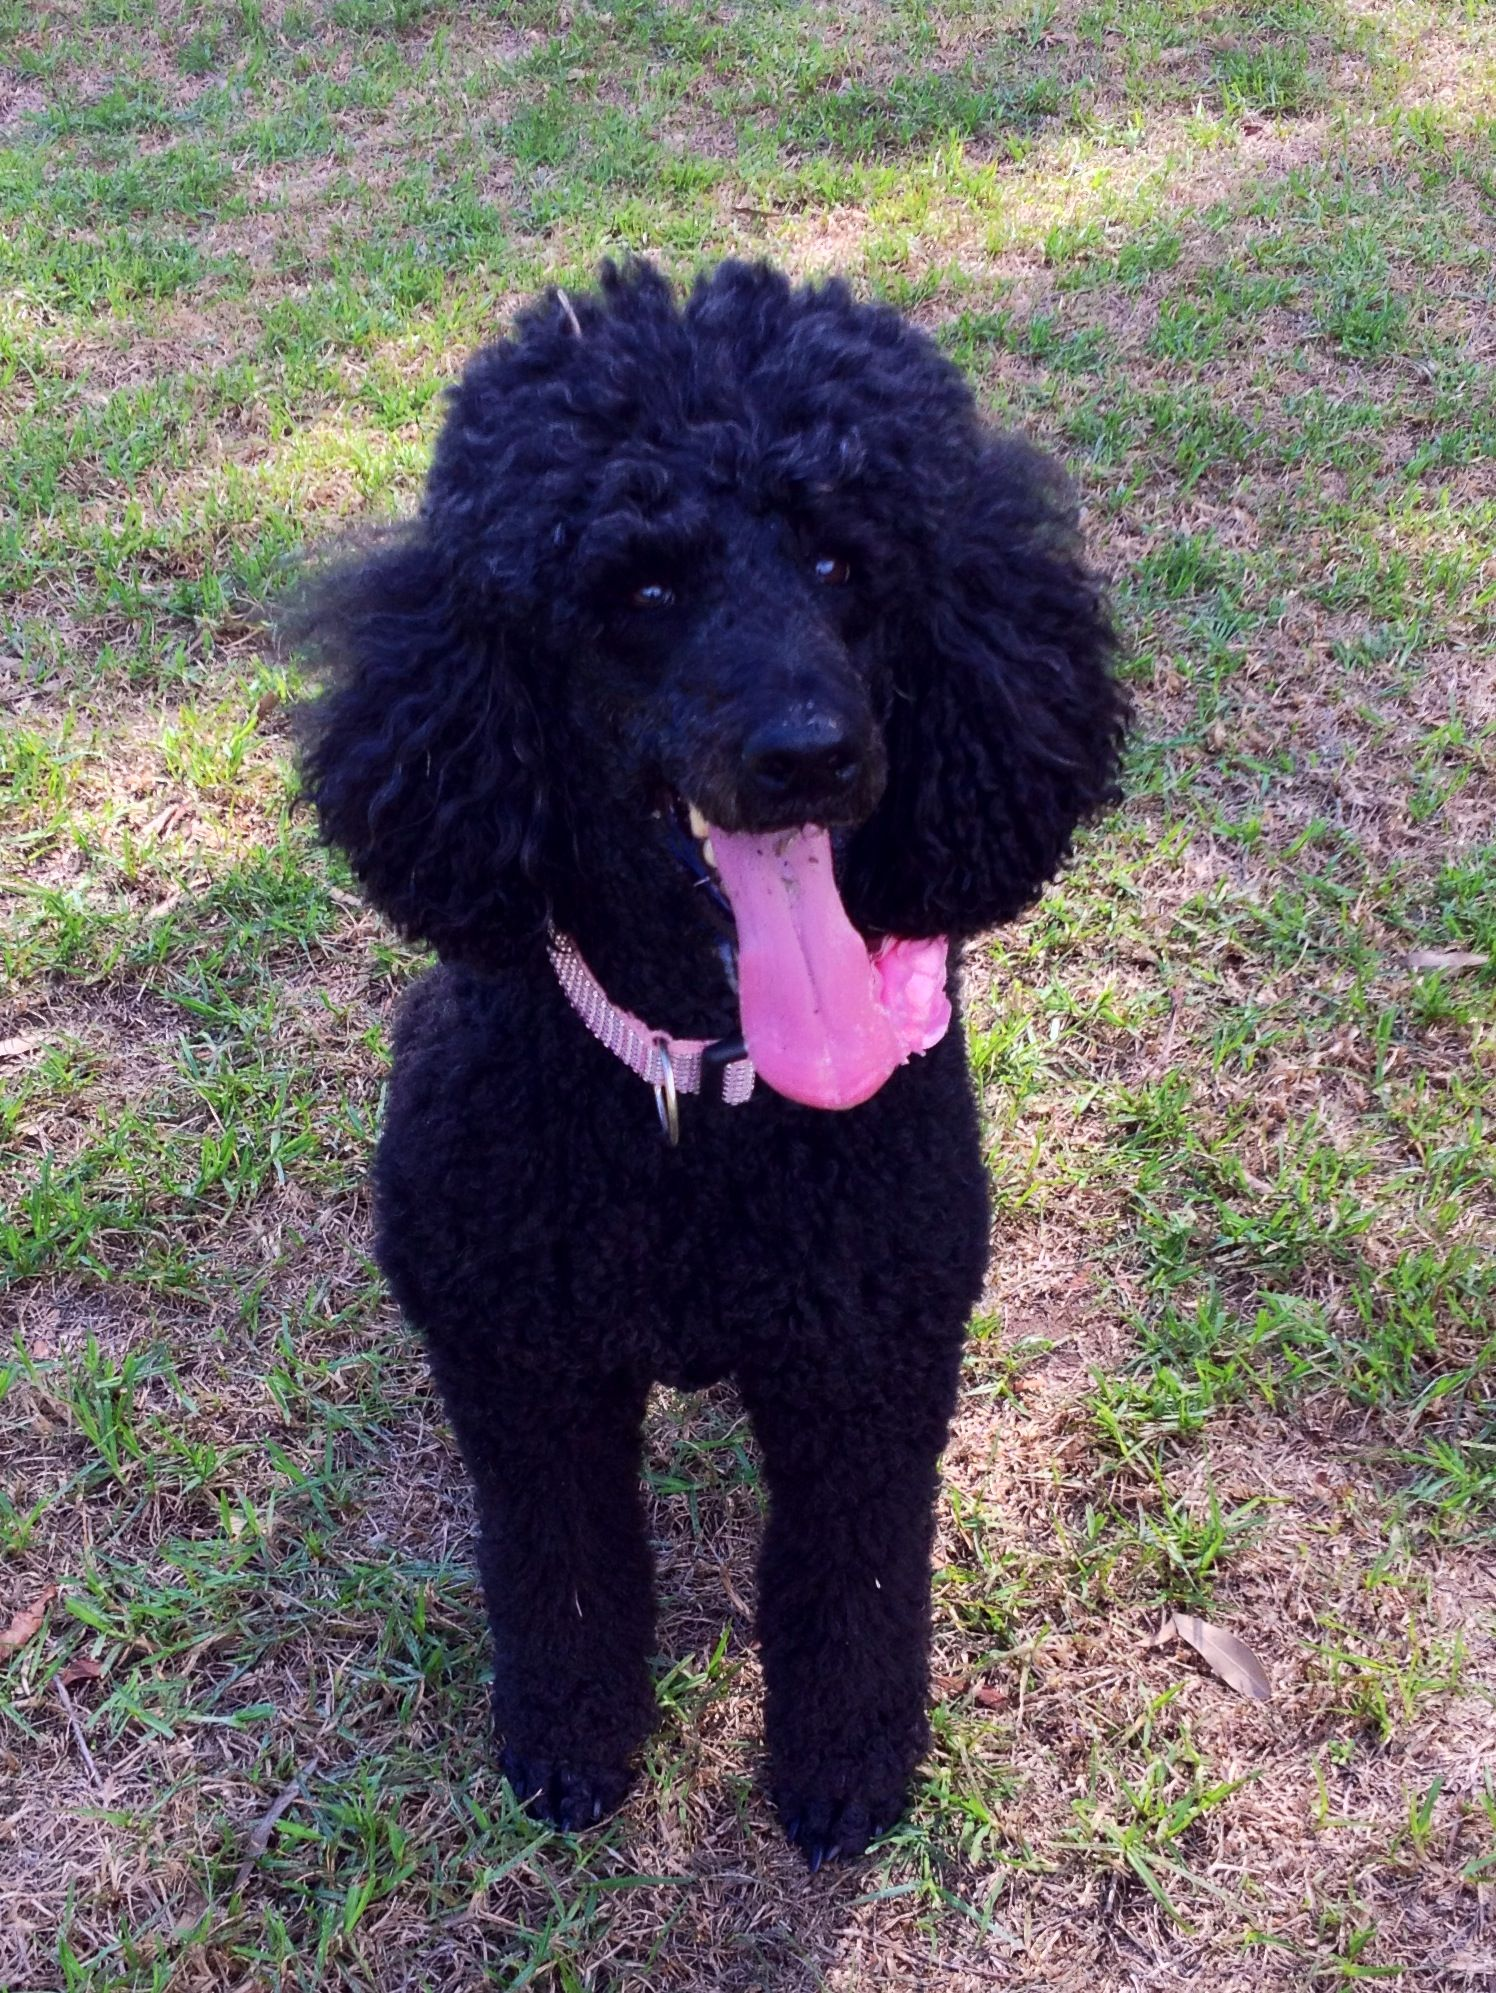 Saturday, sunny & at the dog park, perfect #bellapoodle